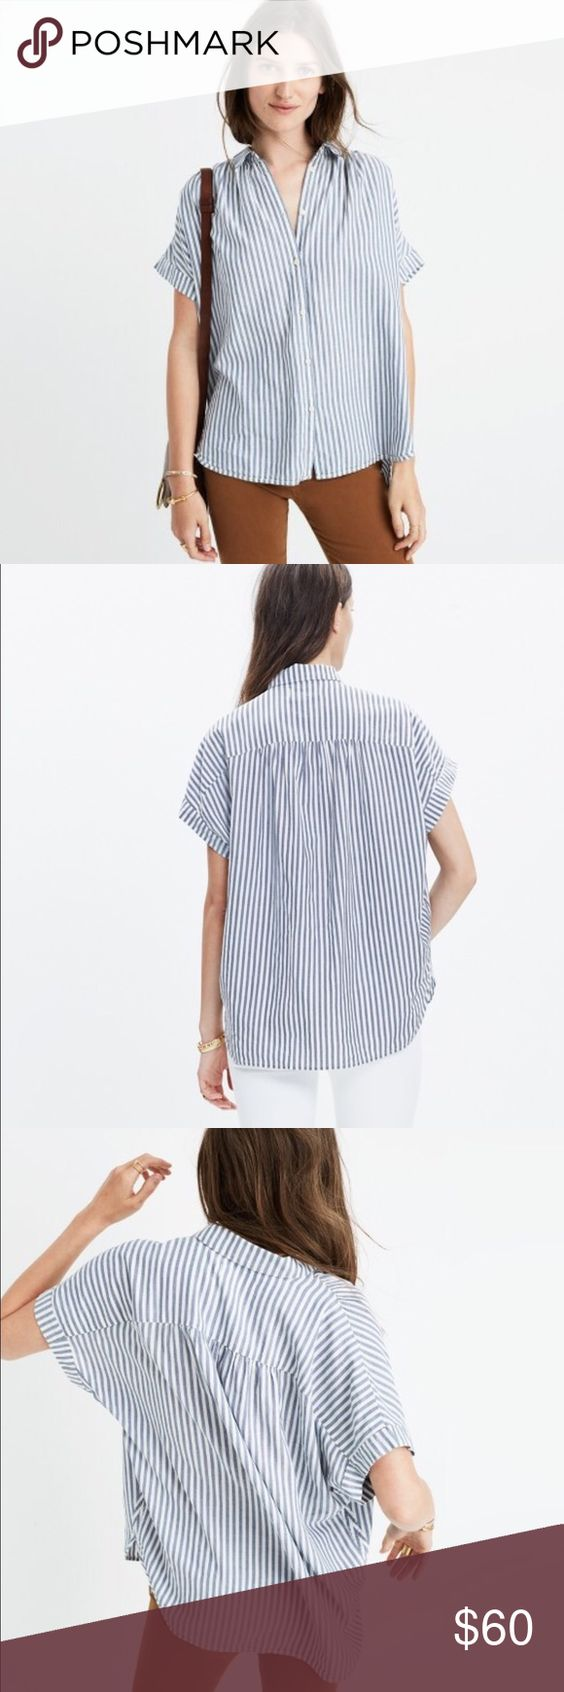 Madewell central shirt in chambray stripe Madewell central shirt in chambray stripe               ***this item is very lightly worn and still on the Madewell site for full price***                                  PRODUCT DETAILS (from Madewell website)  A feminine take on our favorite slightly oversized top, in a softer silhouette with drapey sleeves. Effortlessly cool and totally sexy.    Slightly oversized fit. Cotton. Machine wash. Madewell Tops